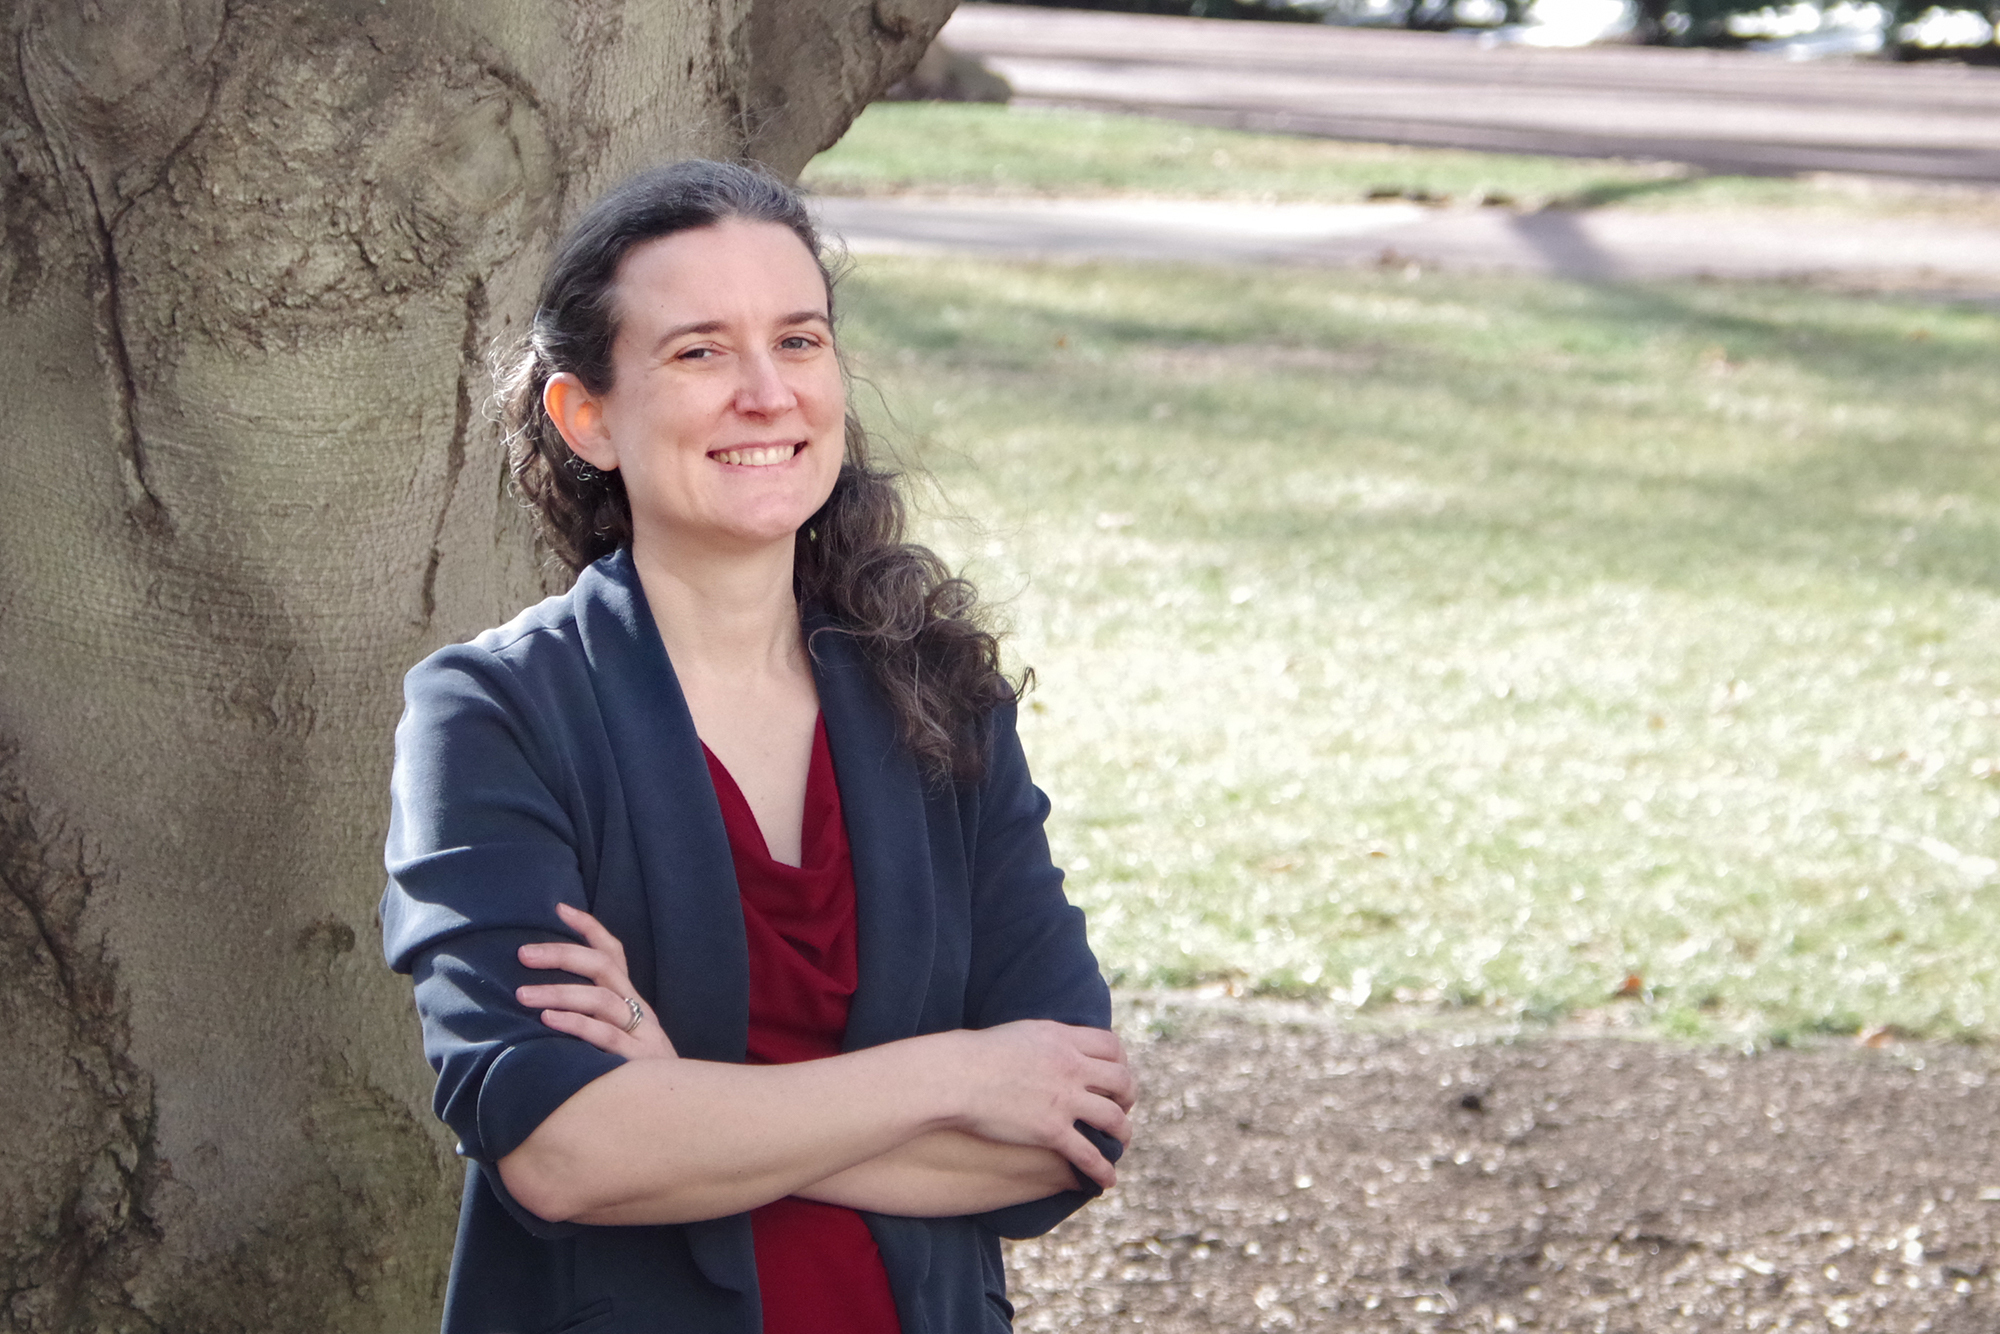 Kelly Metcalf Pate to lead the Division of Comparative Medicine